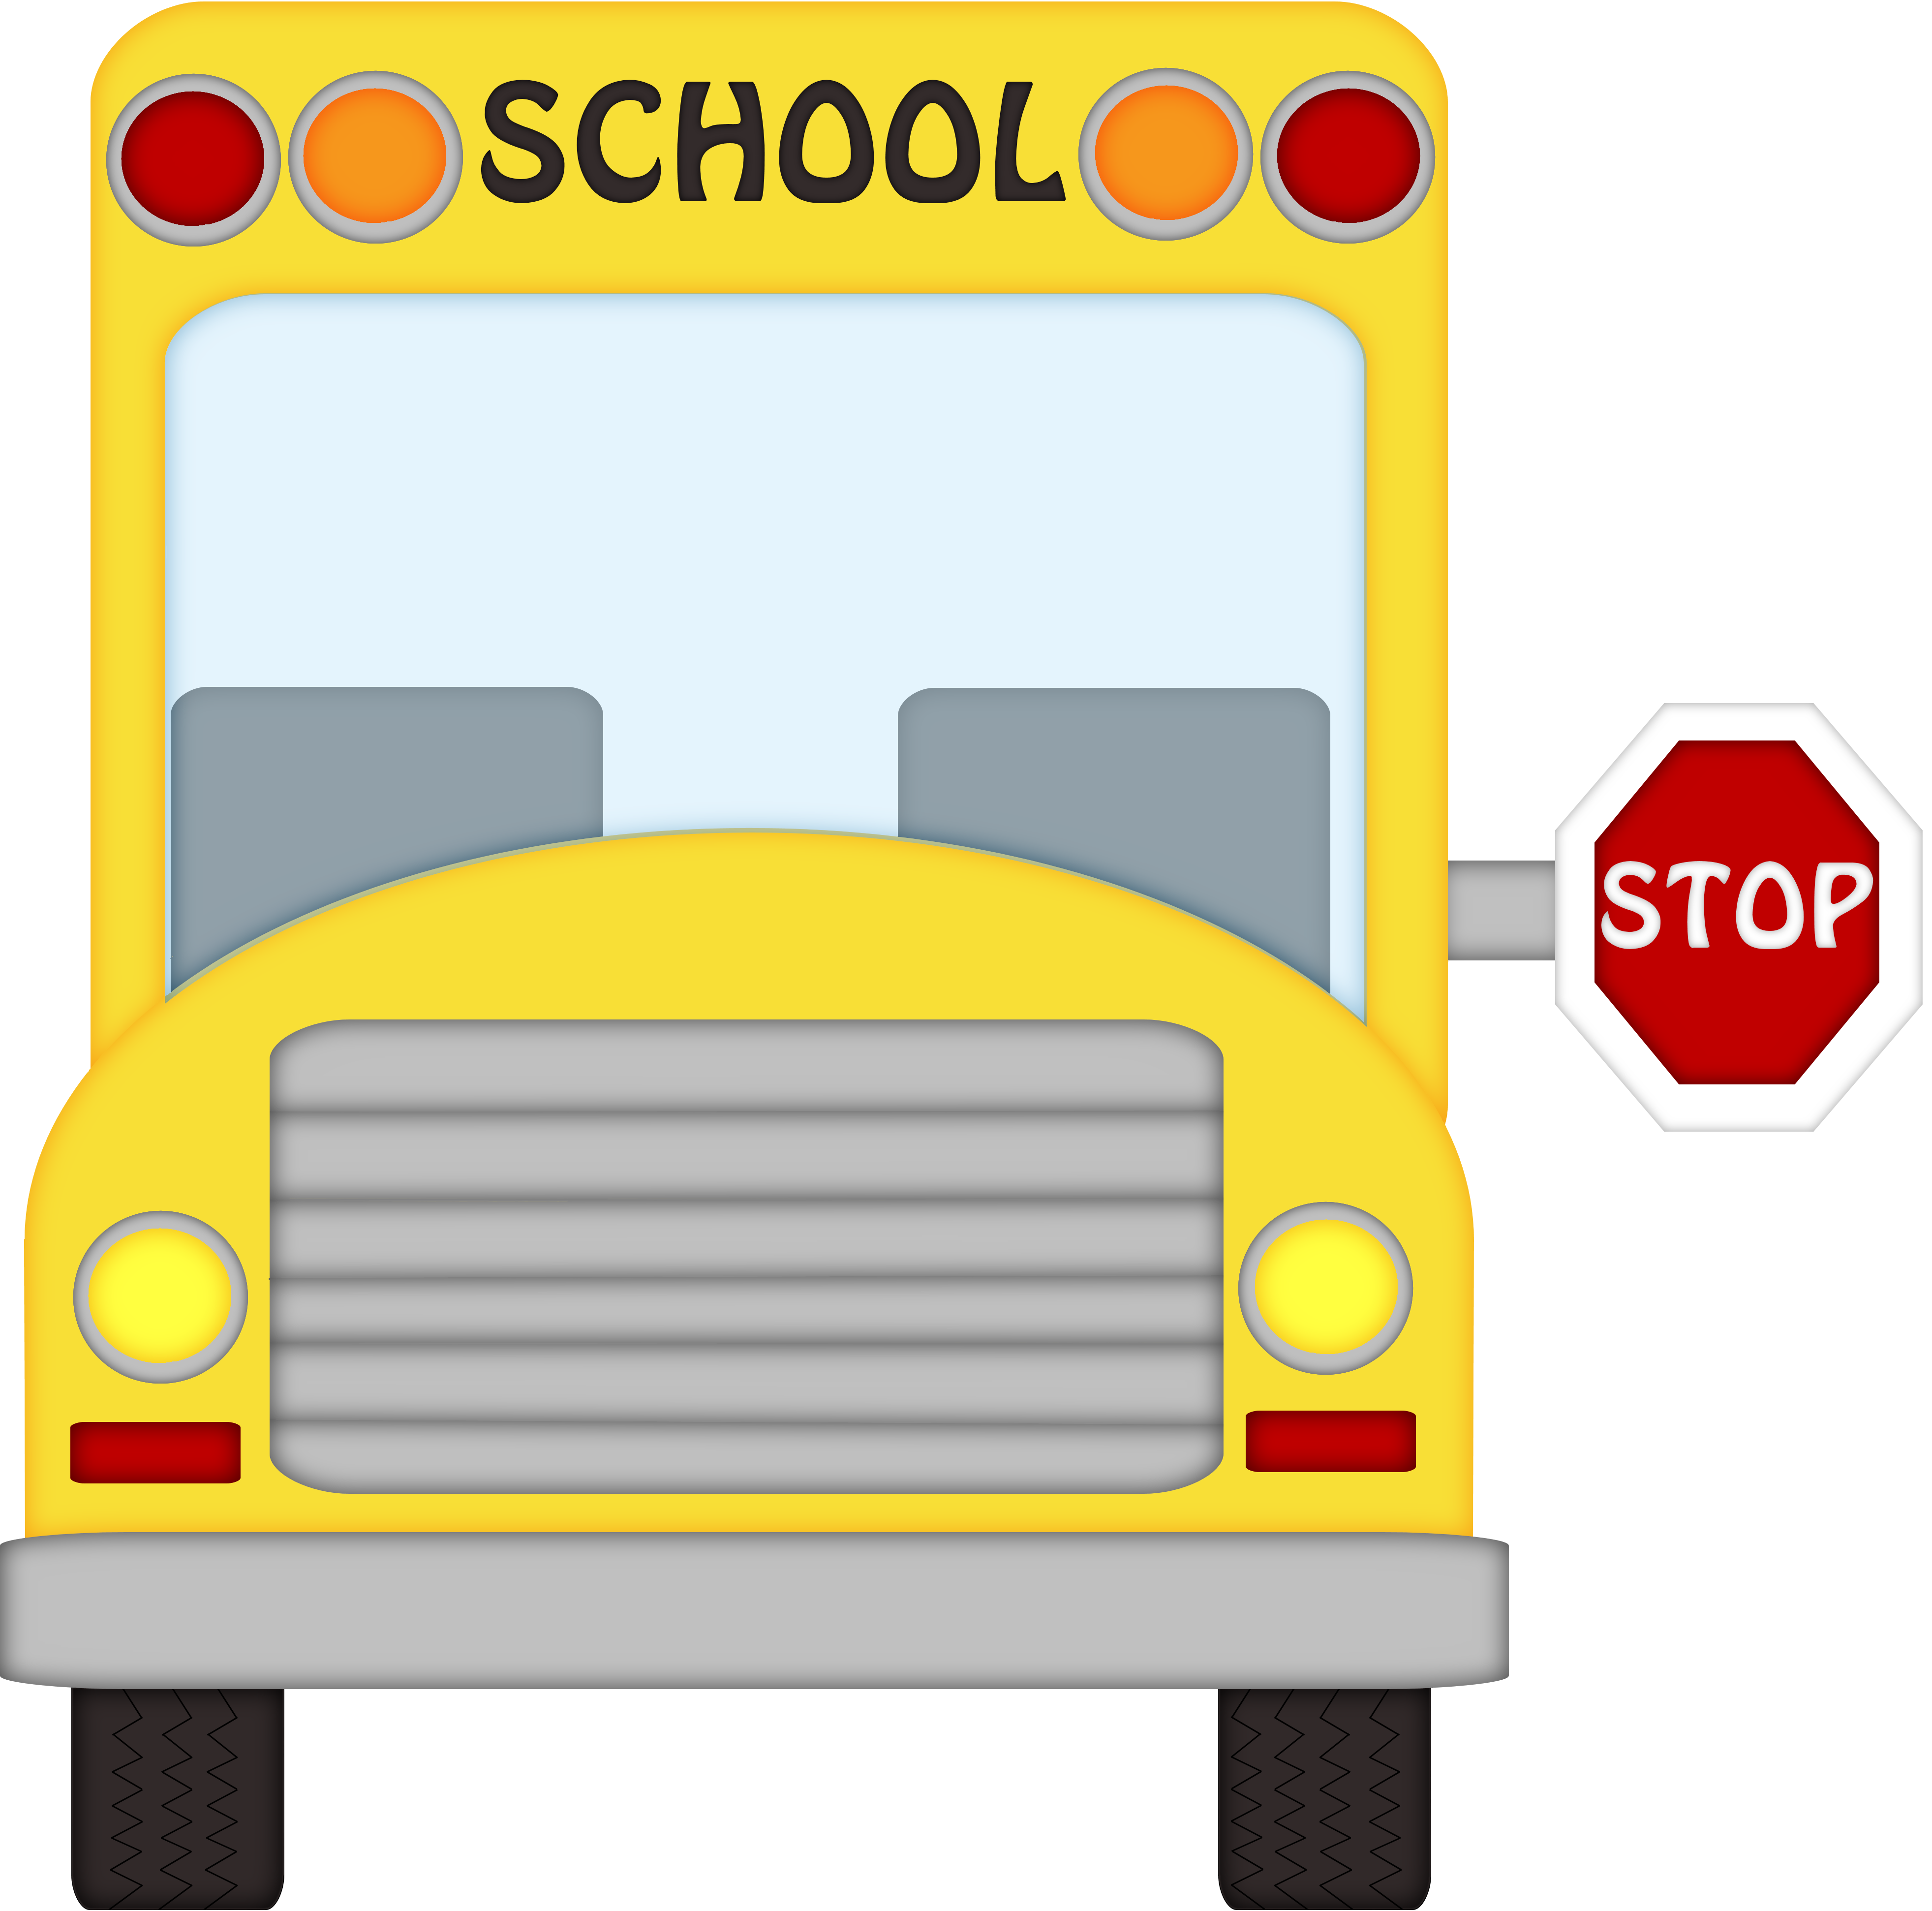 School bus stopping clipart. Stop sign clip art white